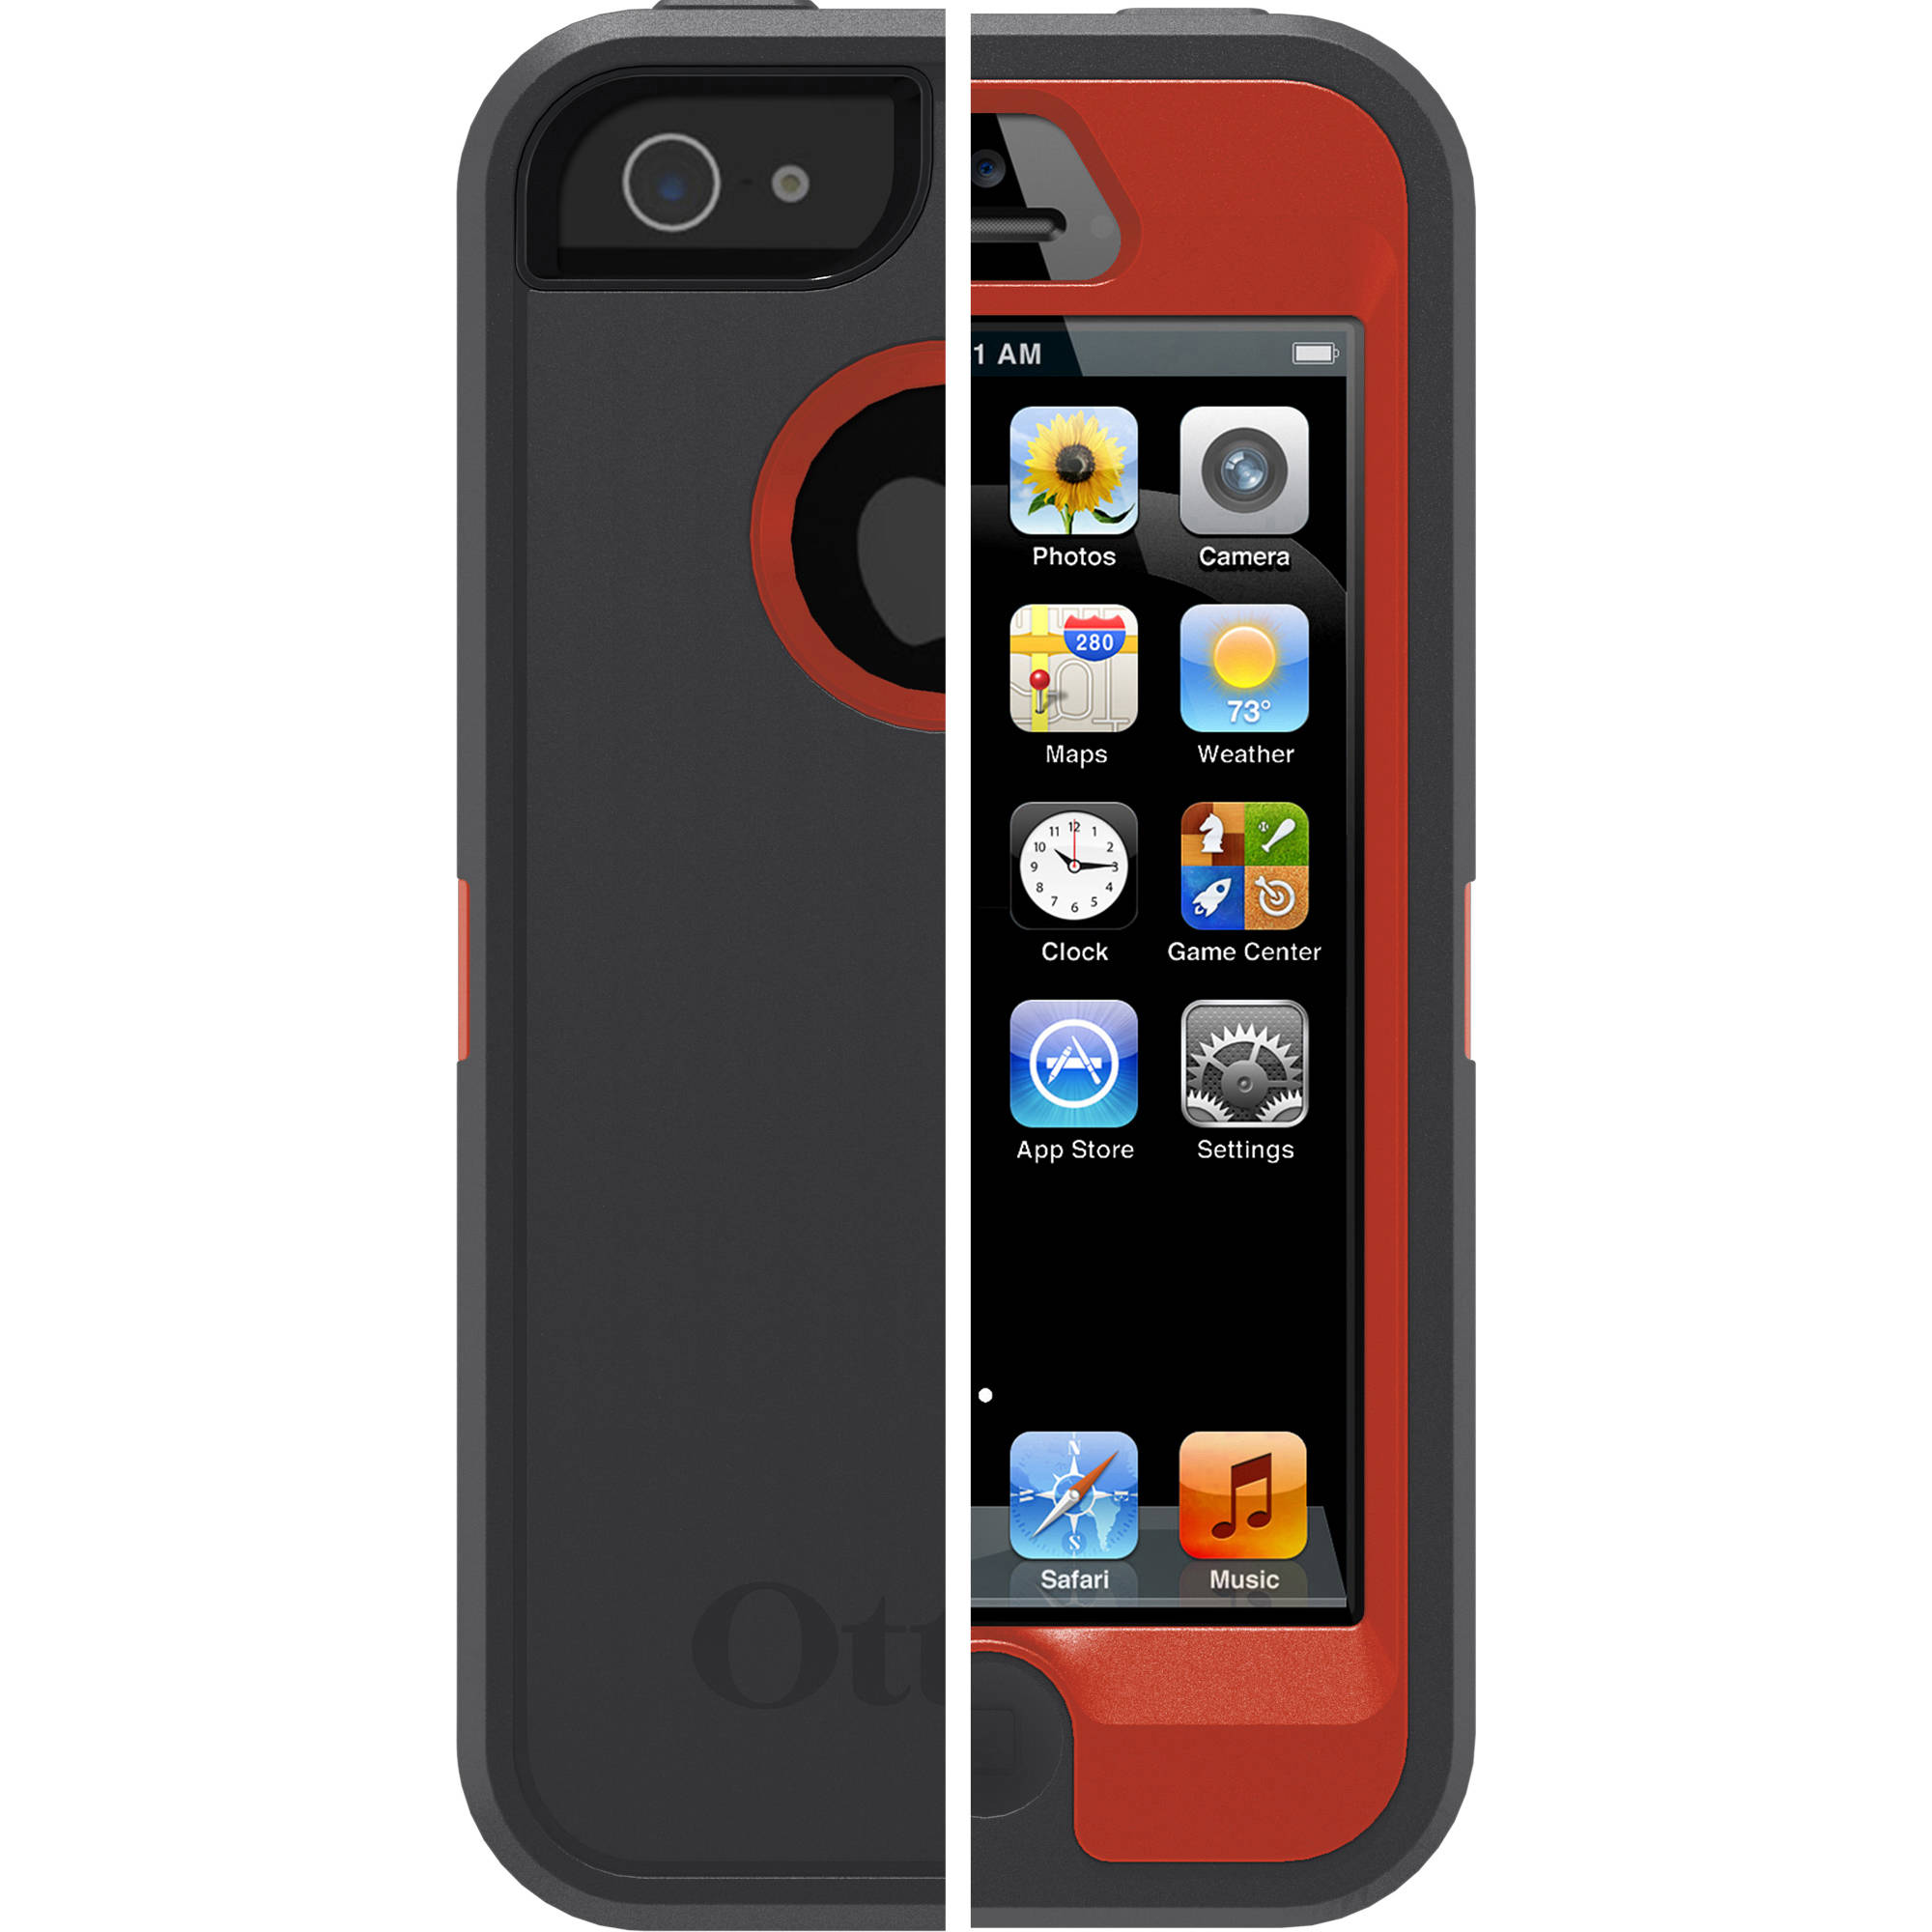 OtterBox Defender Case for iPhone 5 Bolt Gray/Red* Cover OEM Original